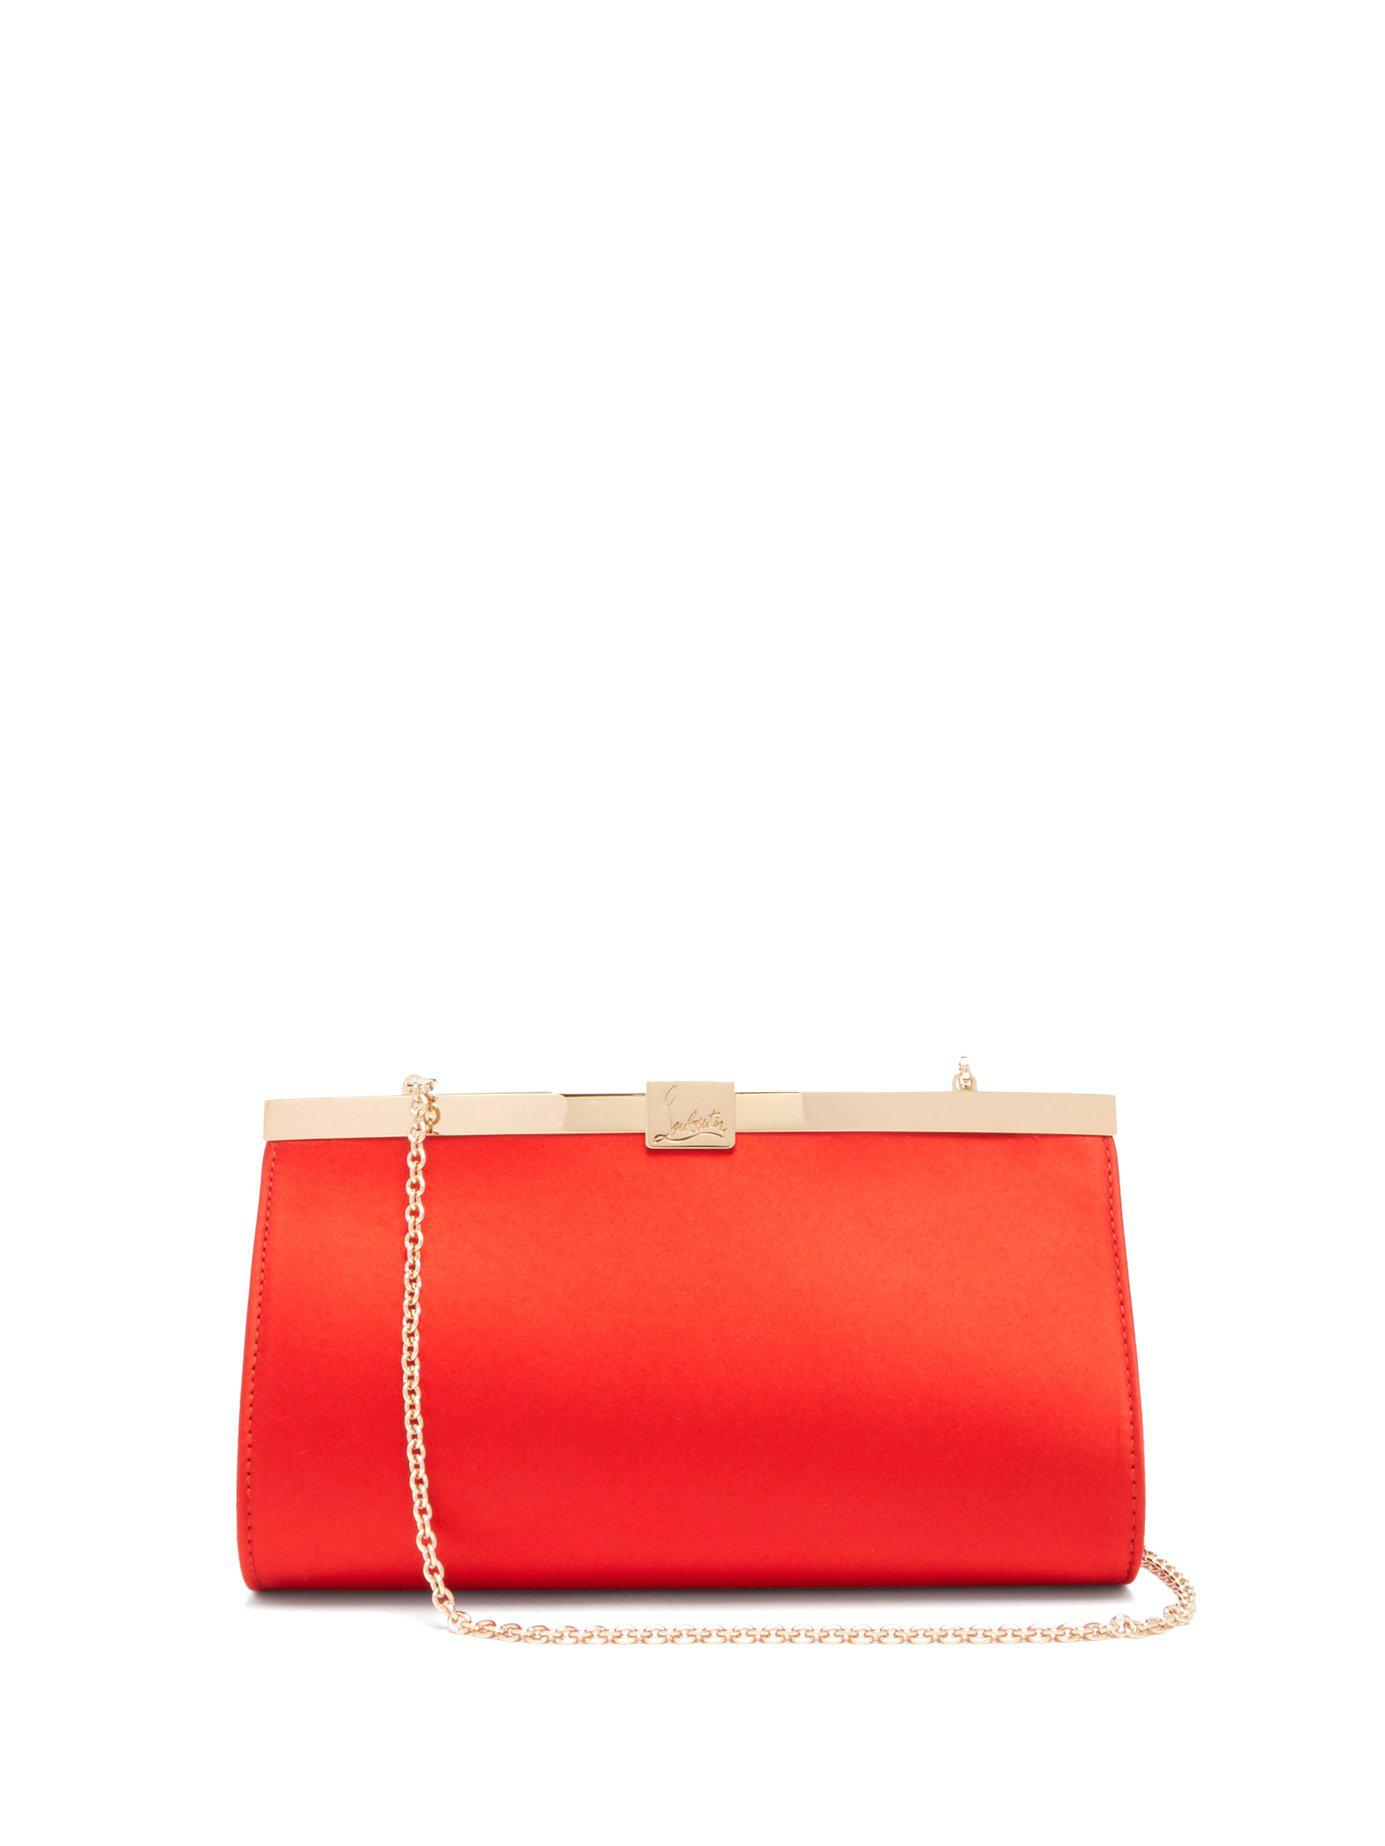 541cd45fa0a Christian Louboutin Palmette Satin Clutch in Red - Lyst